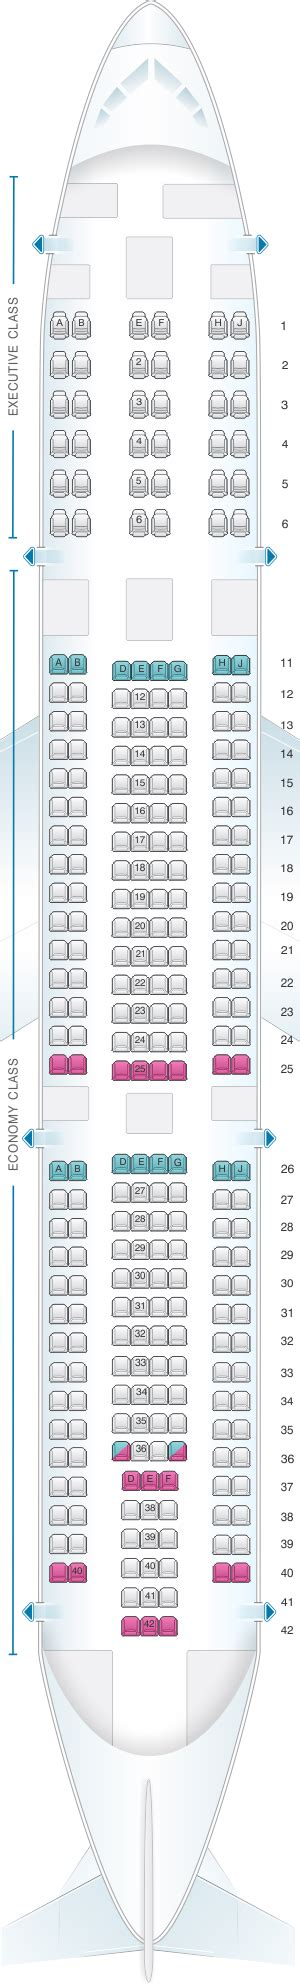 airbus a320 sieges seat map tap portugal airbus a340 seatmaestro